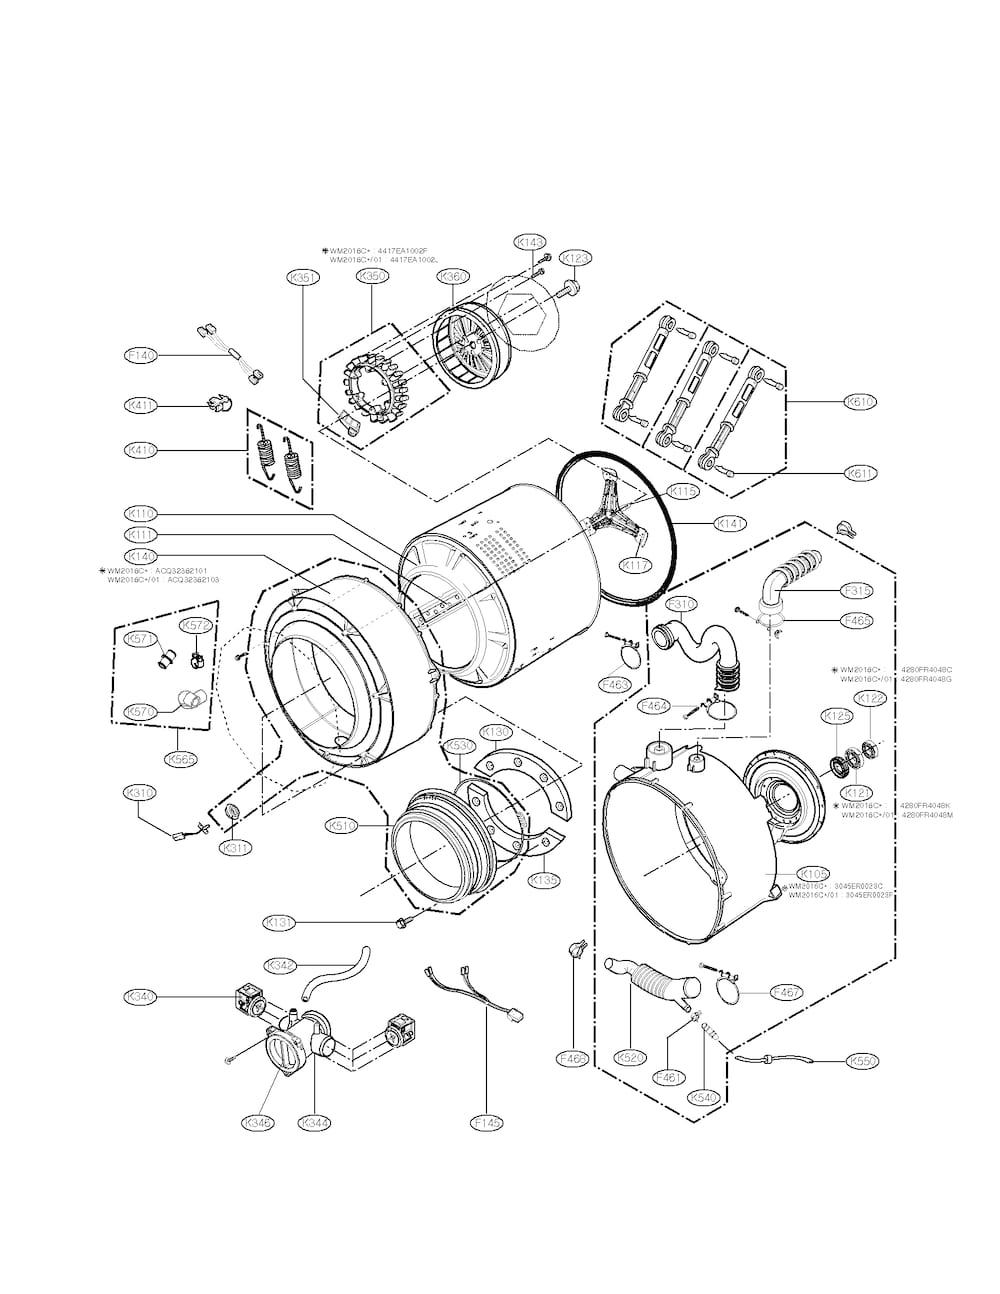 Lg Washer Parts | Model Wm2016Cw01 | Sears Partsdirect inside Lg Front Load Washer Parts Diagram